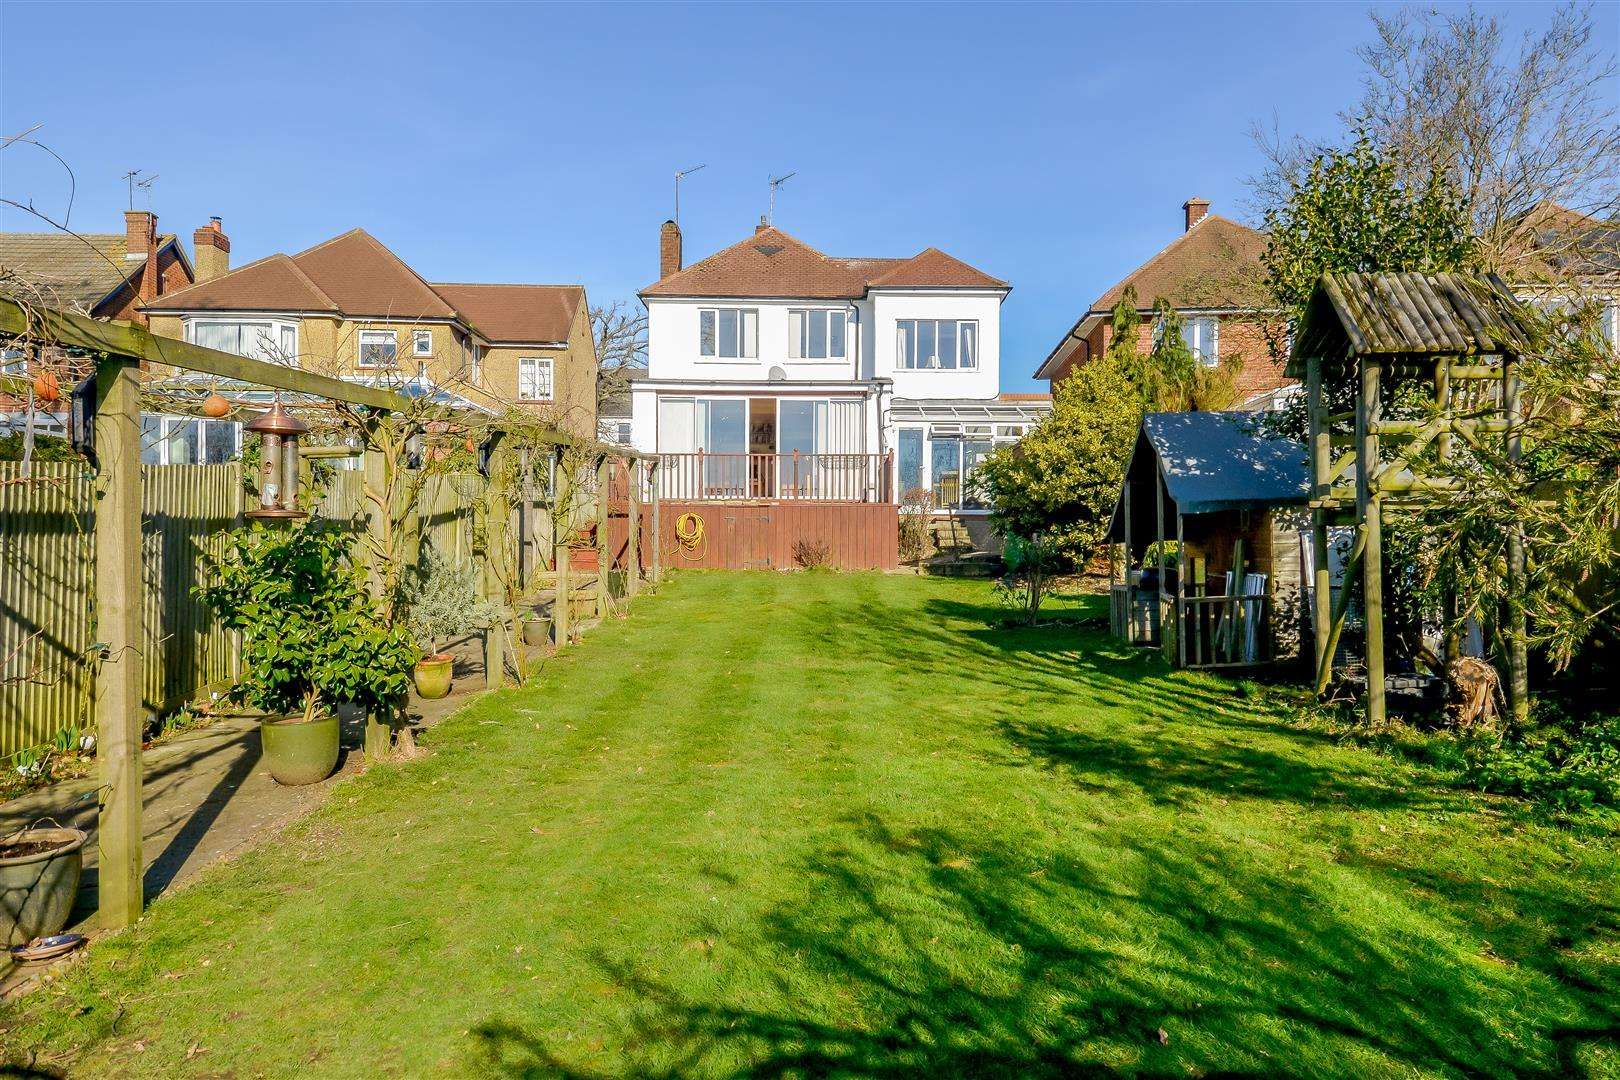 4 bed for sale in Merry Hill Road, Bushey - (Property Image 13)